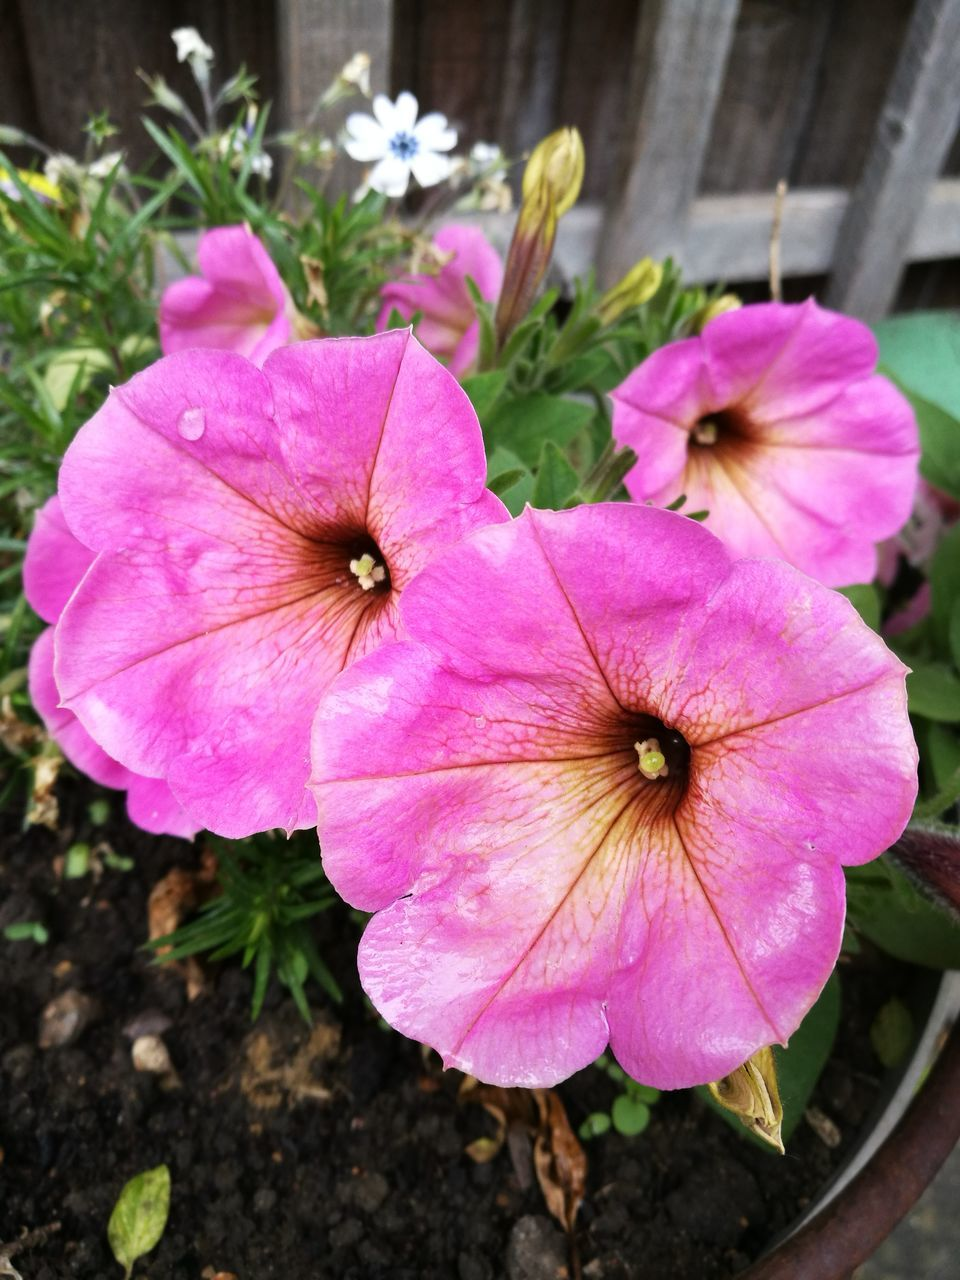 flower, pink color, petal, growth, flower head, blooming, day, fragility, outdoors, nature, plant, beauty in nature, no people, petunia, freshness, close-up, periwinkle